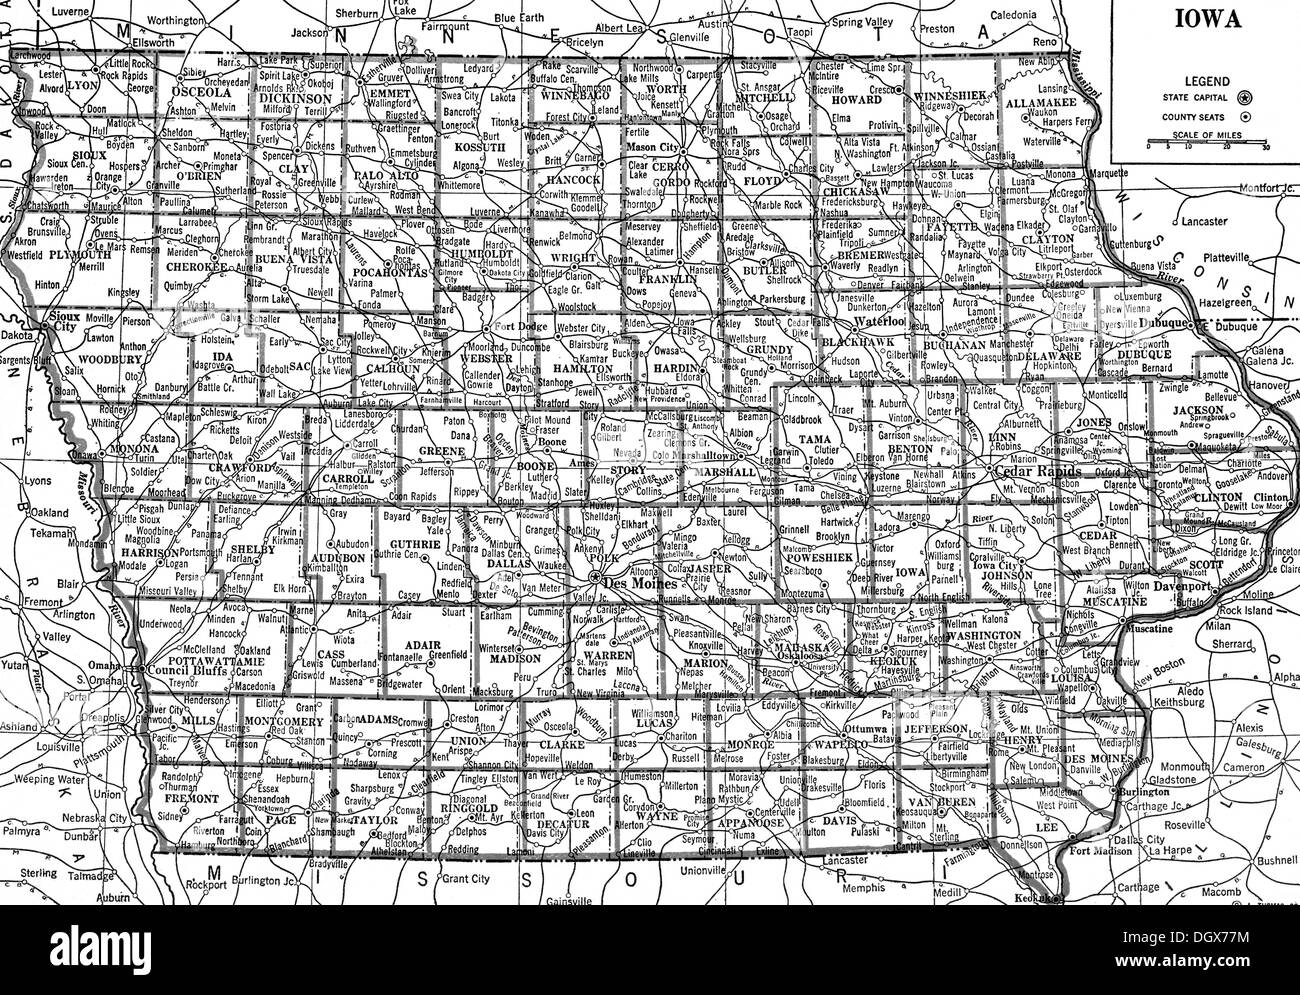 Old Iowa Map.Old Map Of Iowa State 1930 S Stock Photo 62042056 Alamy